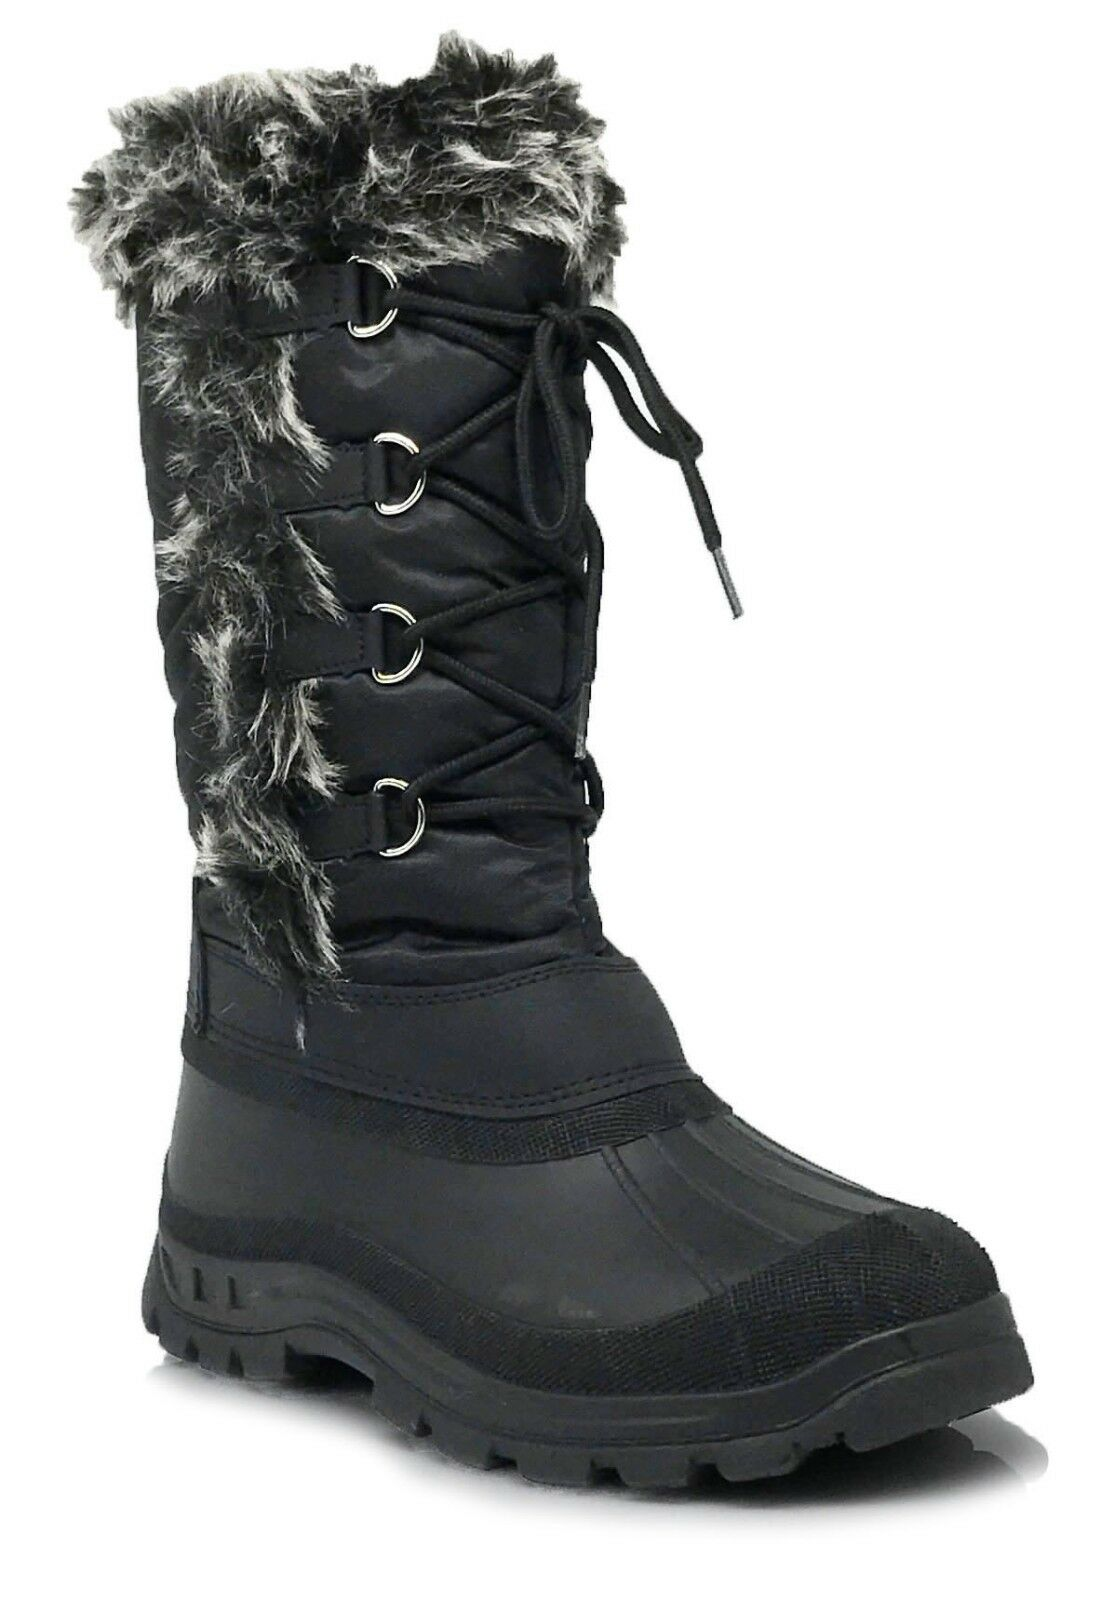 New Women Snow Boots Weather Proof Water Resistant Side Zipper Fur Lined Ice